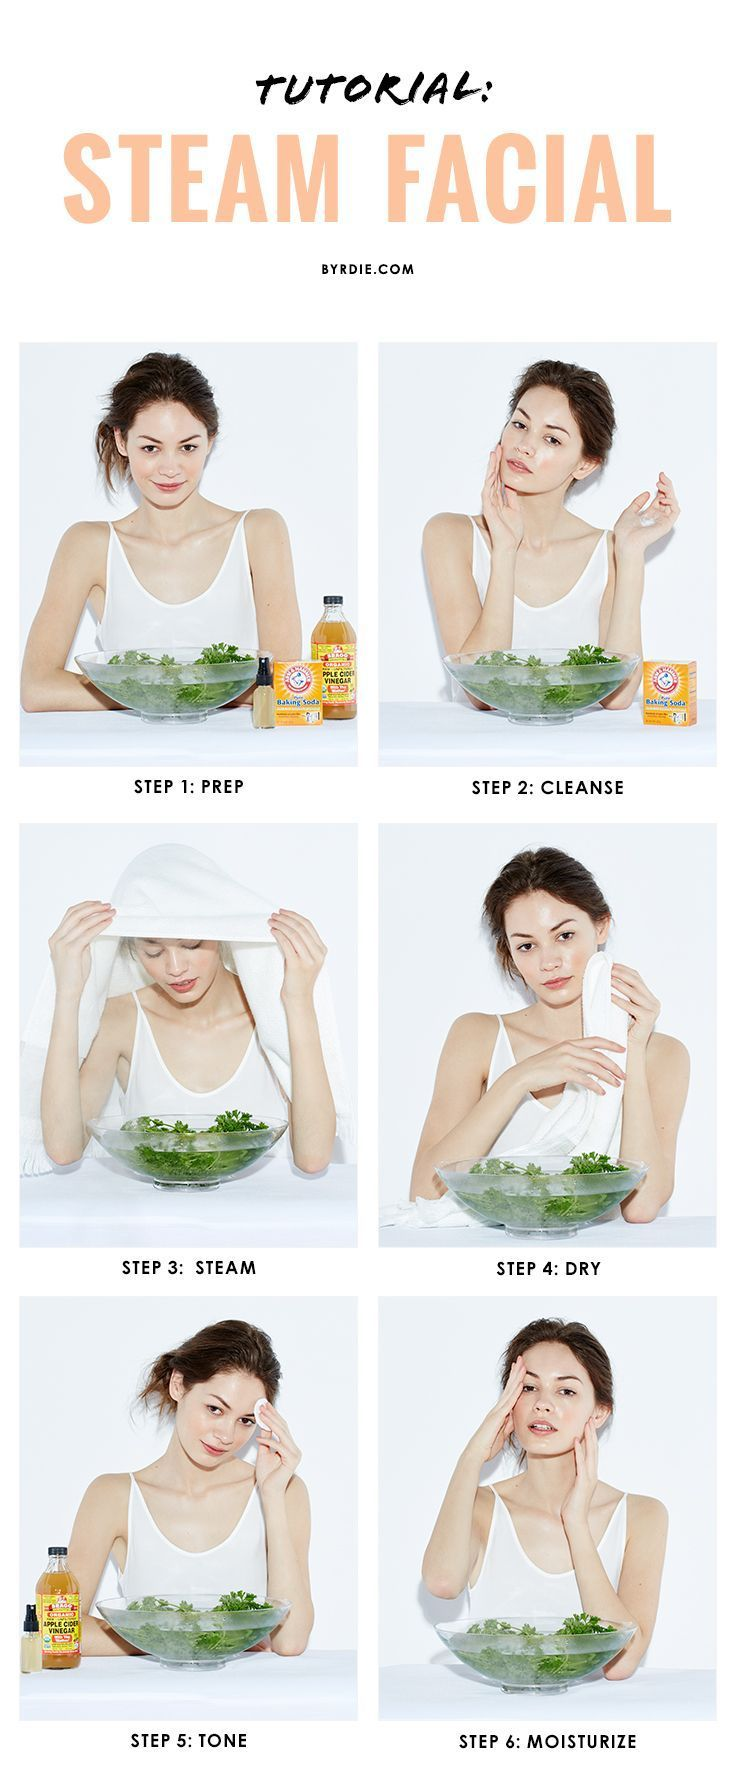 Tutorial how to give yourself an all natural steam facial 6 steps to the perfect diy steam facial diy beauty solutioingenieria Choice Image